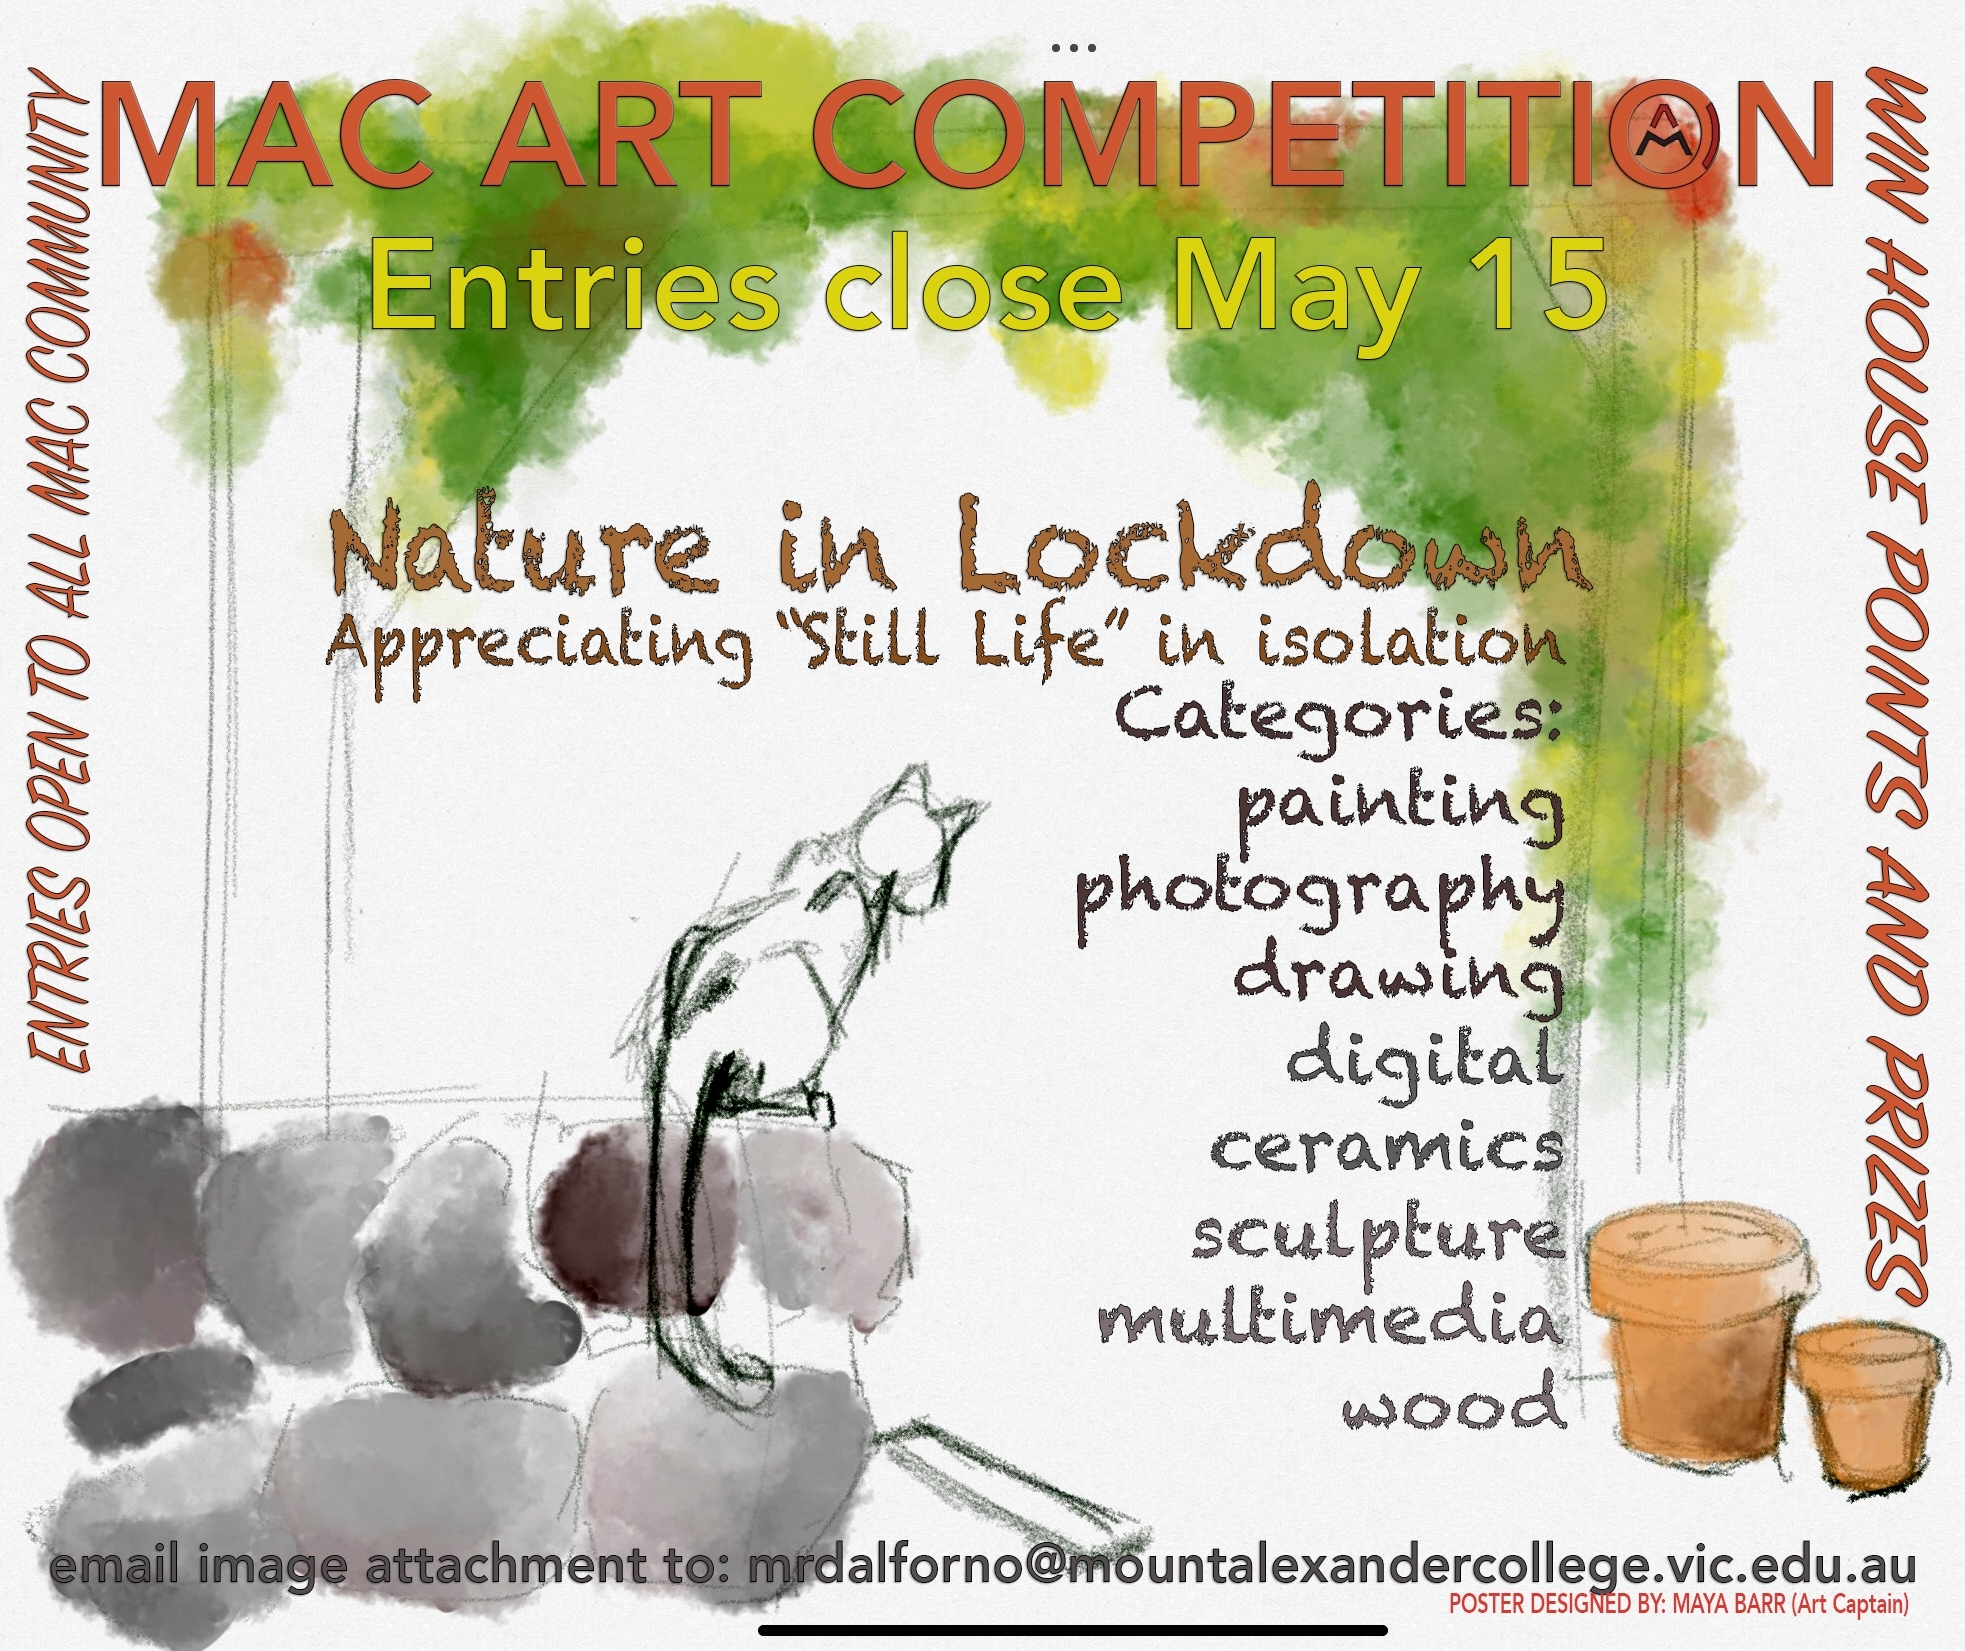 Flyer for an art competition for the whole MAC Community of producing a piece of still life art using nature